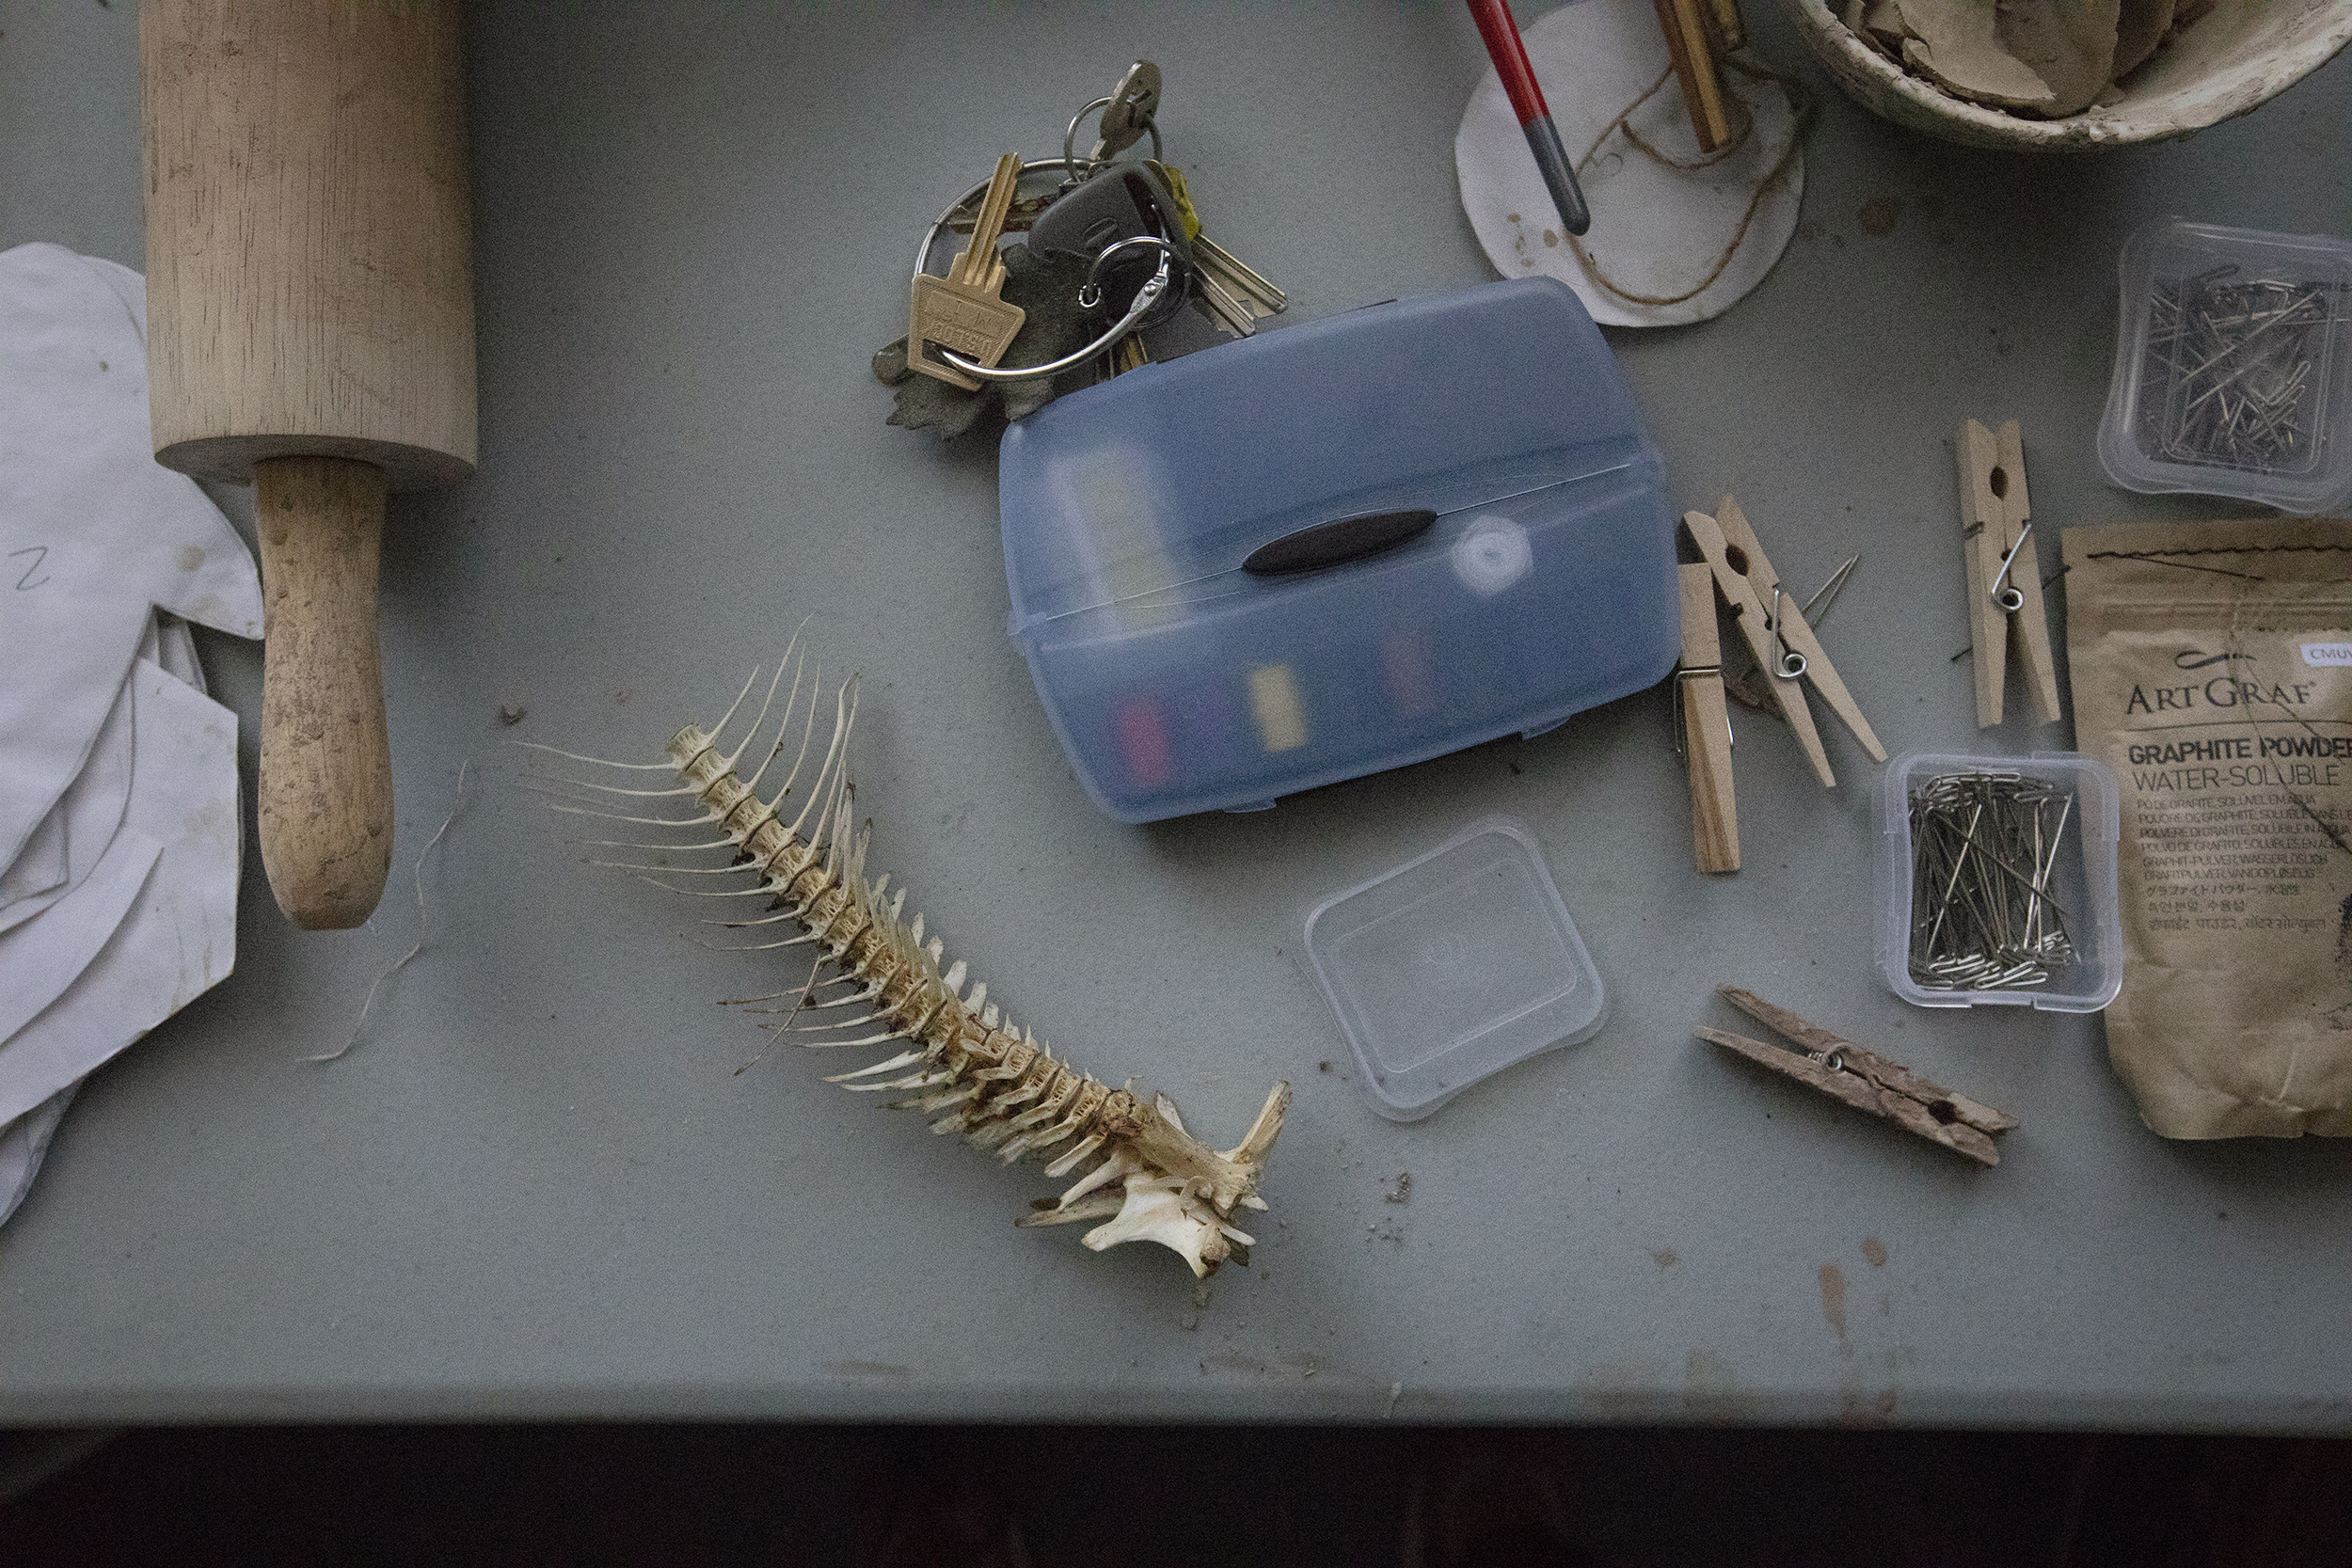 Overhead shot looking down on Ayla Gizlice's work desk, showing a fish spine, car keys, and tools like safety pins, and paint brushes.